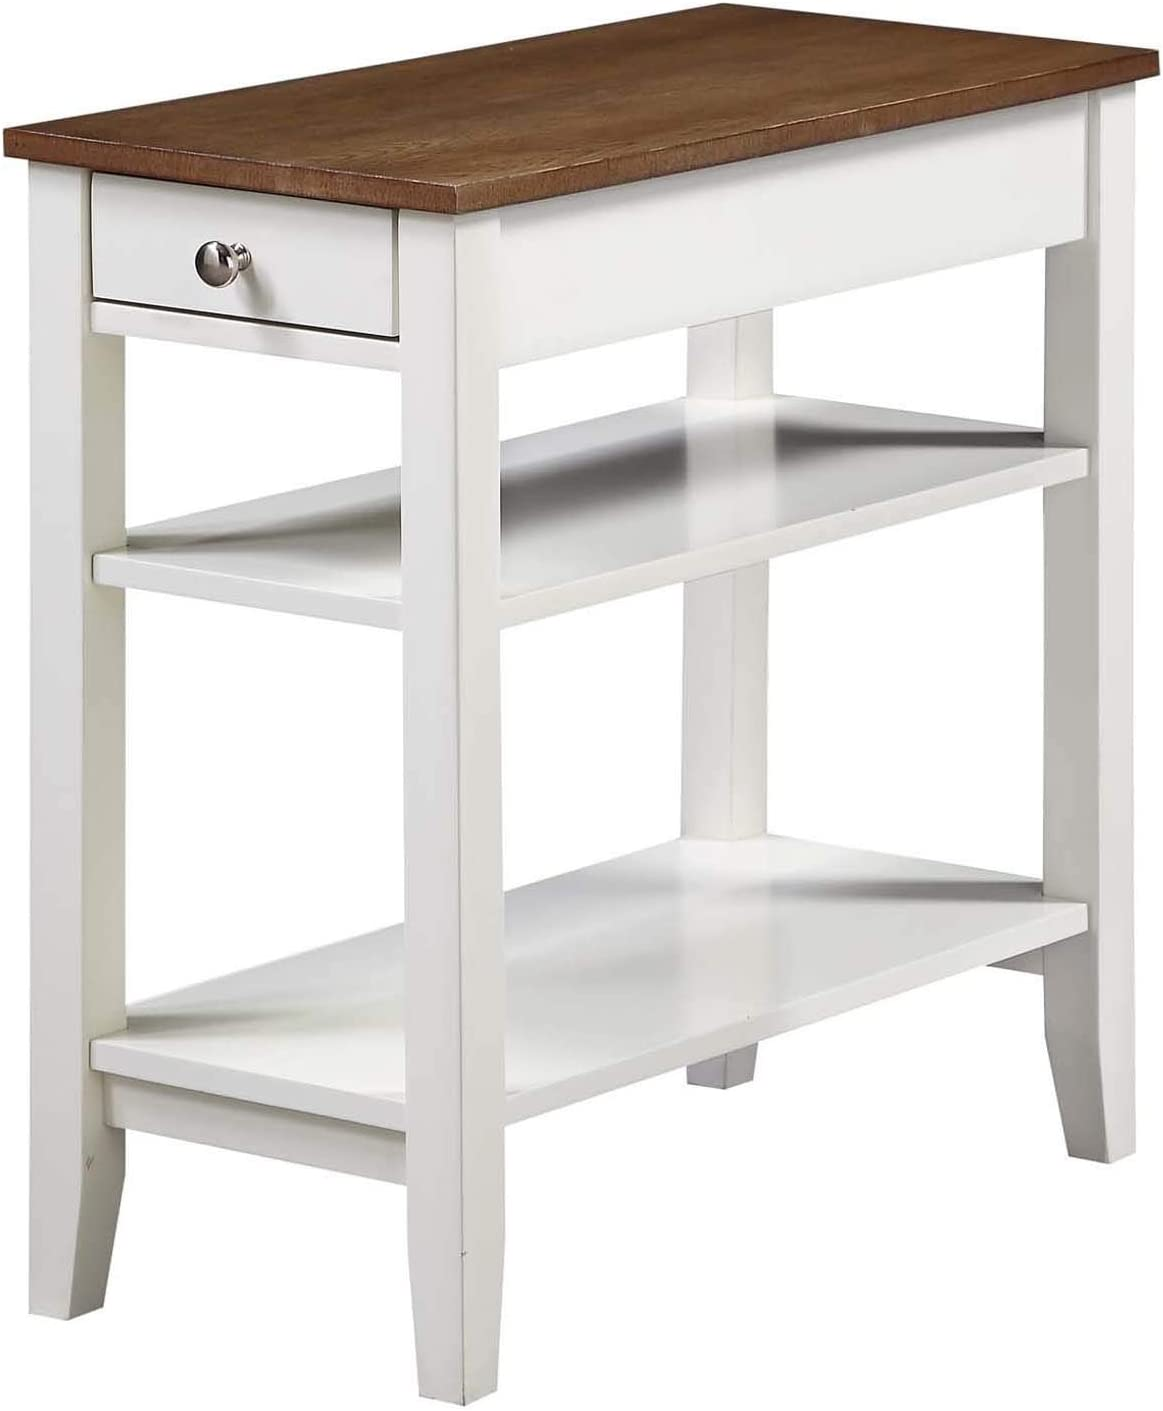 Convenience Concepts American Heritage Three Tier End Table With Drawer, Driftwood / White